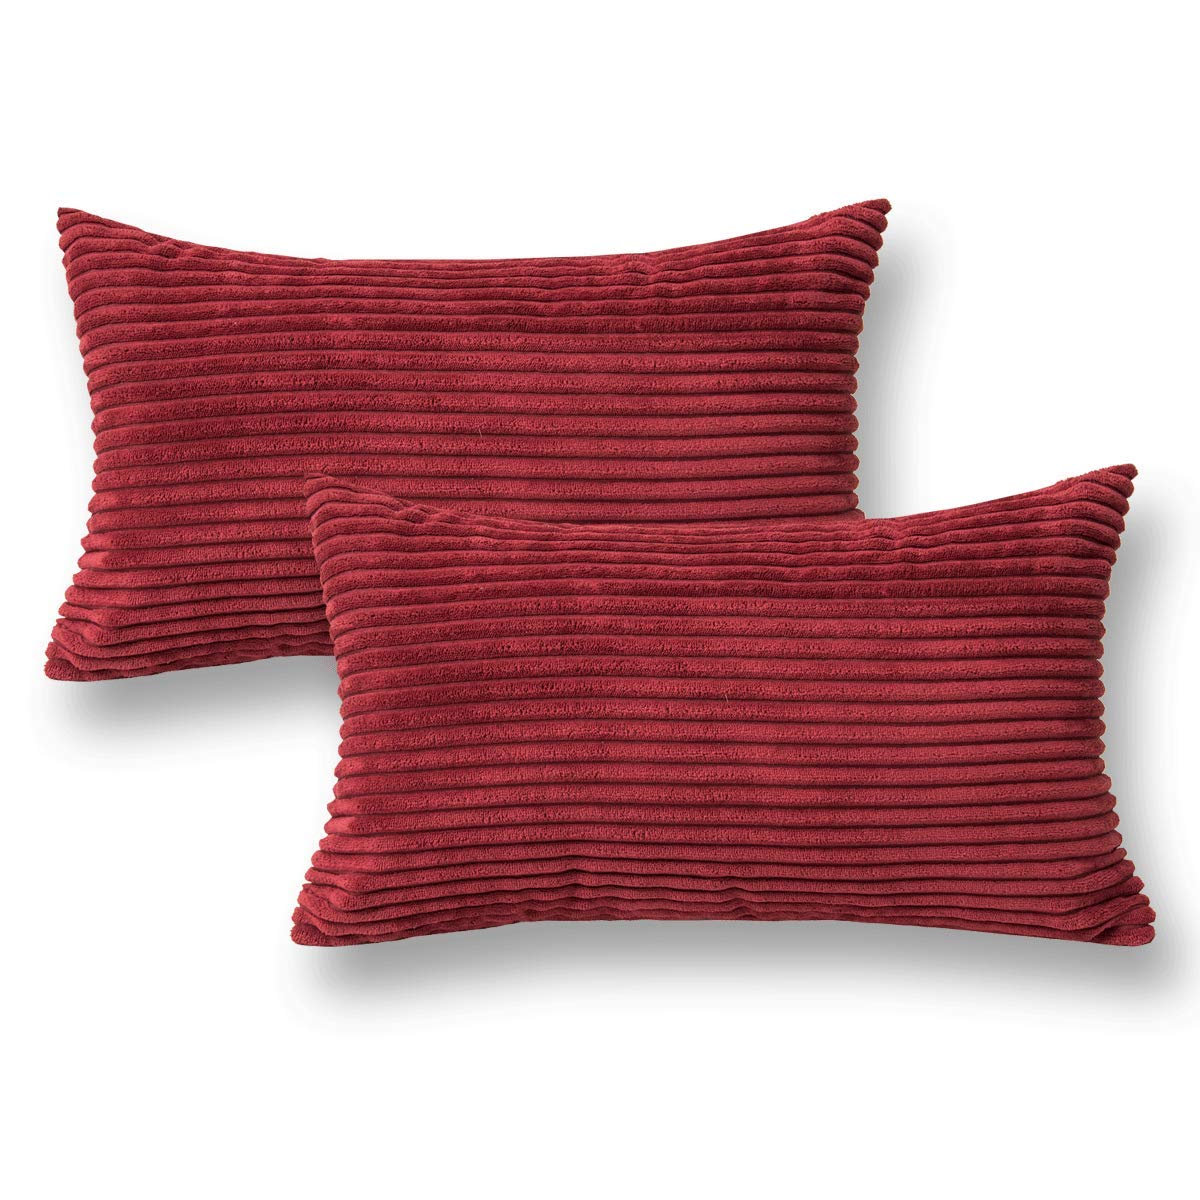 Jeanerlor 2 Pcs Corduroy Throw Pillow Cover Cushion Case from Home Decor for Toddler (Boy or Girl), 12x20 inch (30 x 50 cm), Red Wine